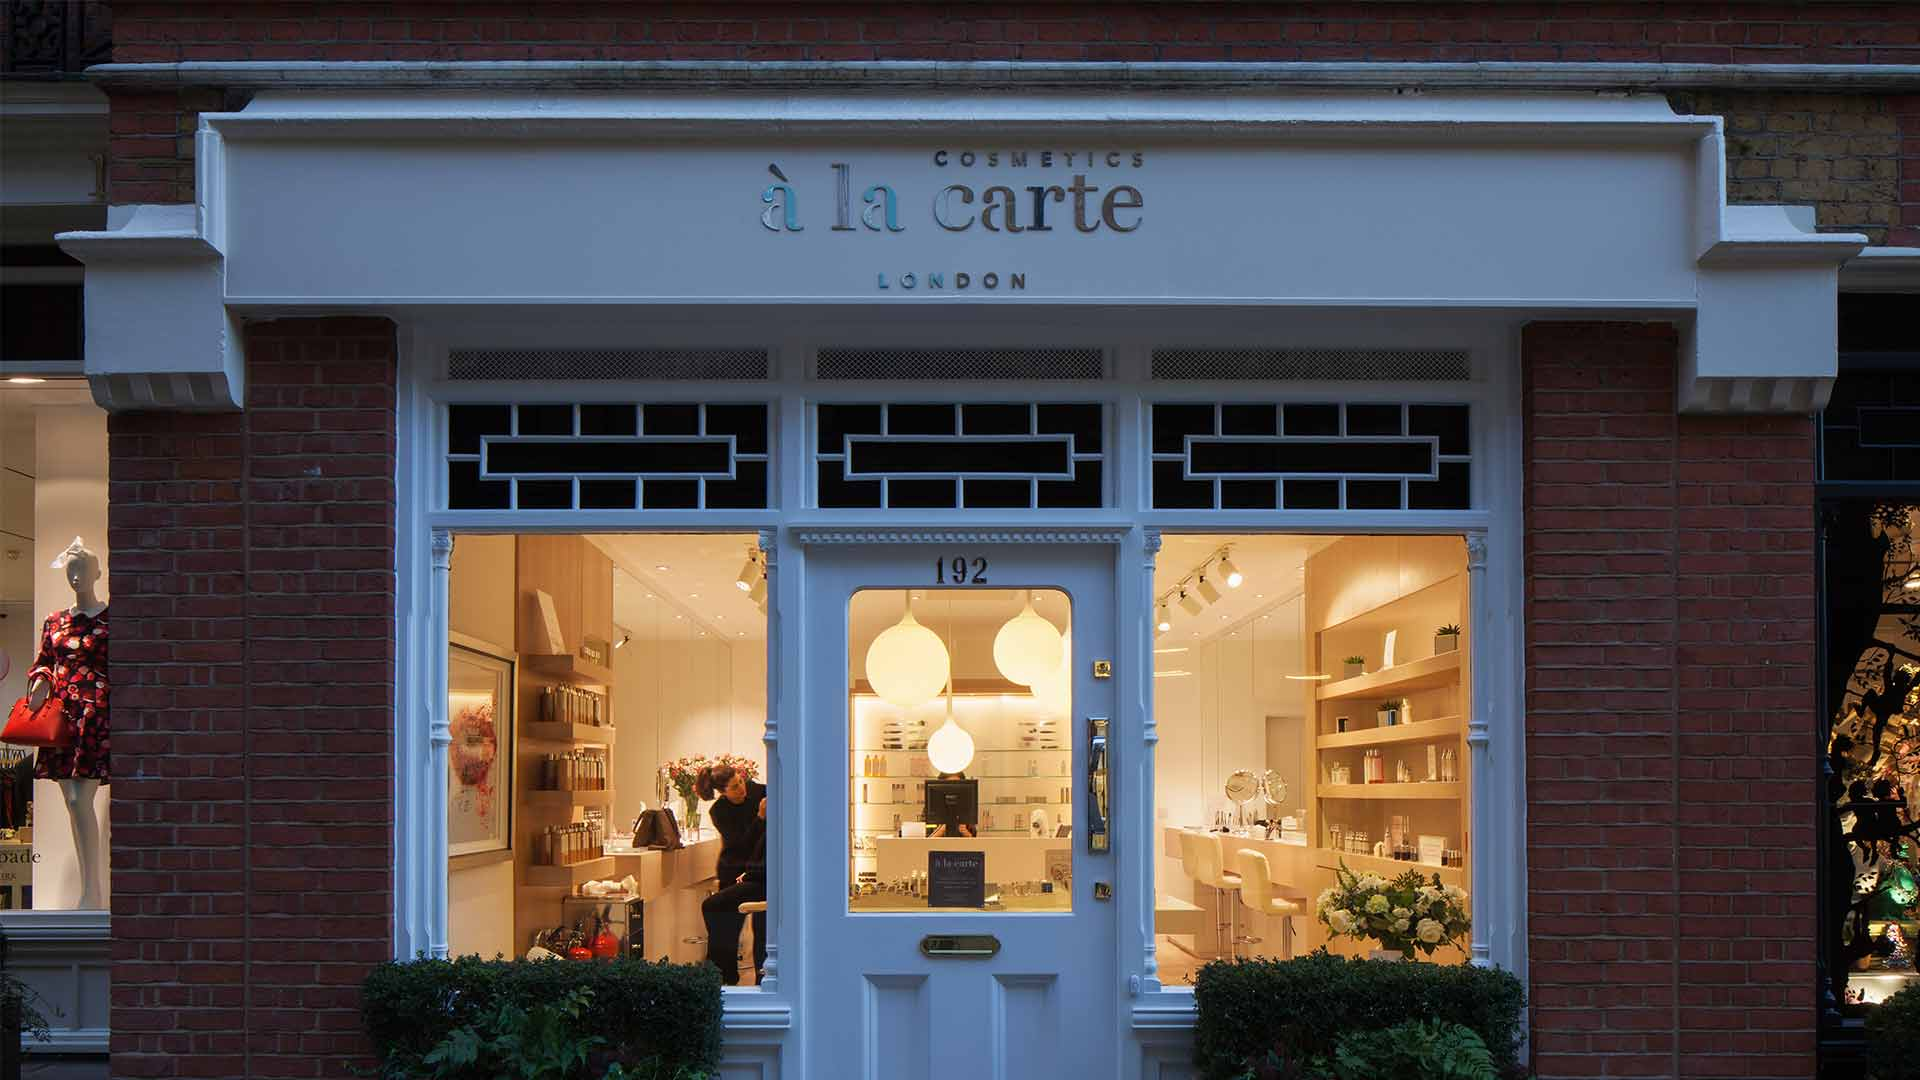 Cosmetics la carte nulty lighting design consultants for Retail store exterior design